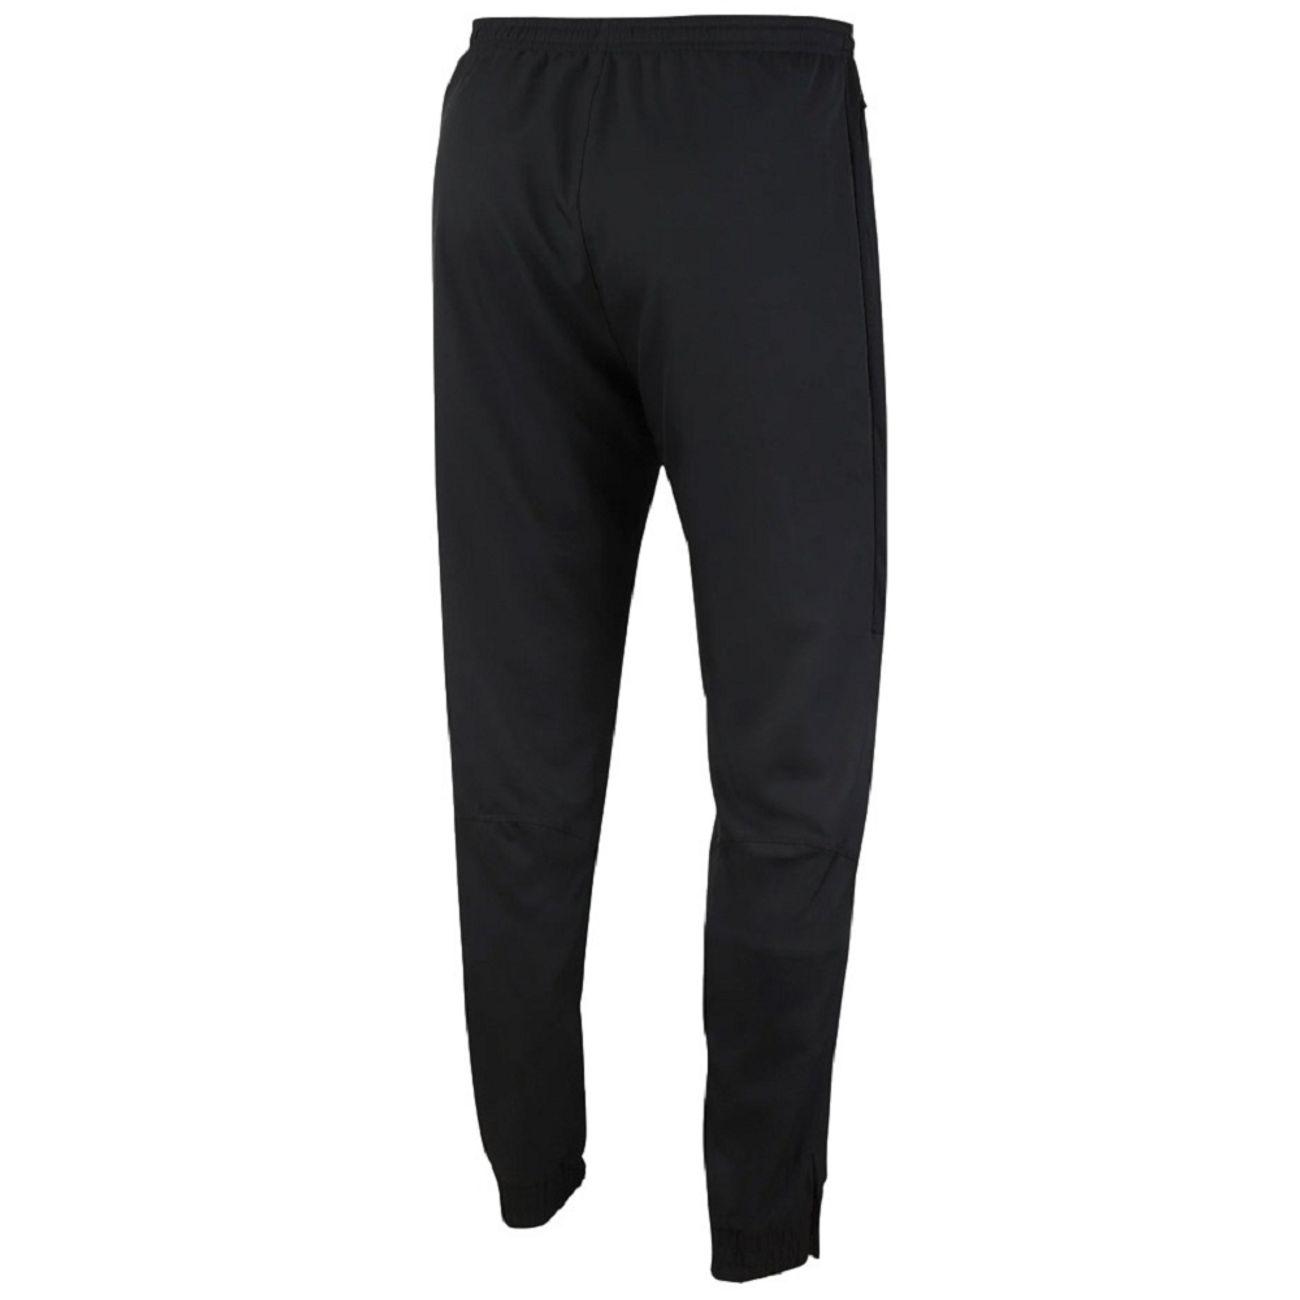 Mode- Lifestyle homme NIKE Pantalon Foot Homme Nike Dri Fit Academy